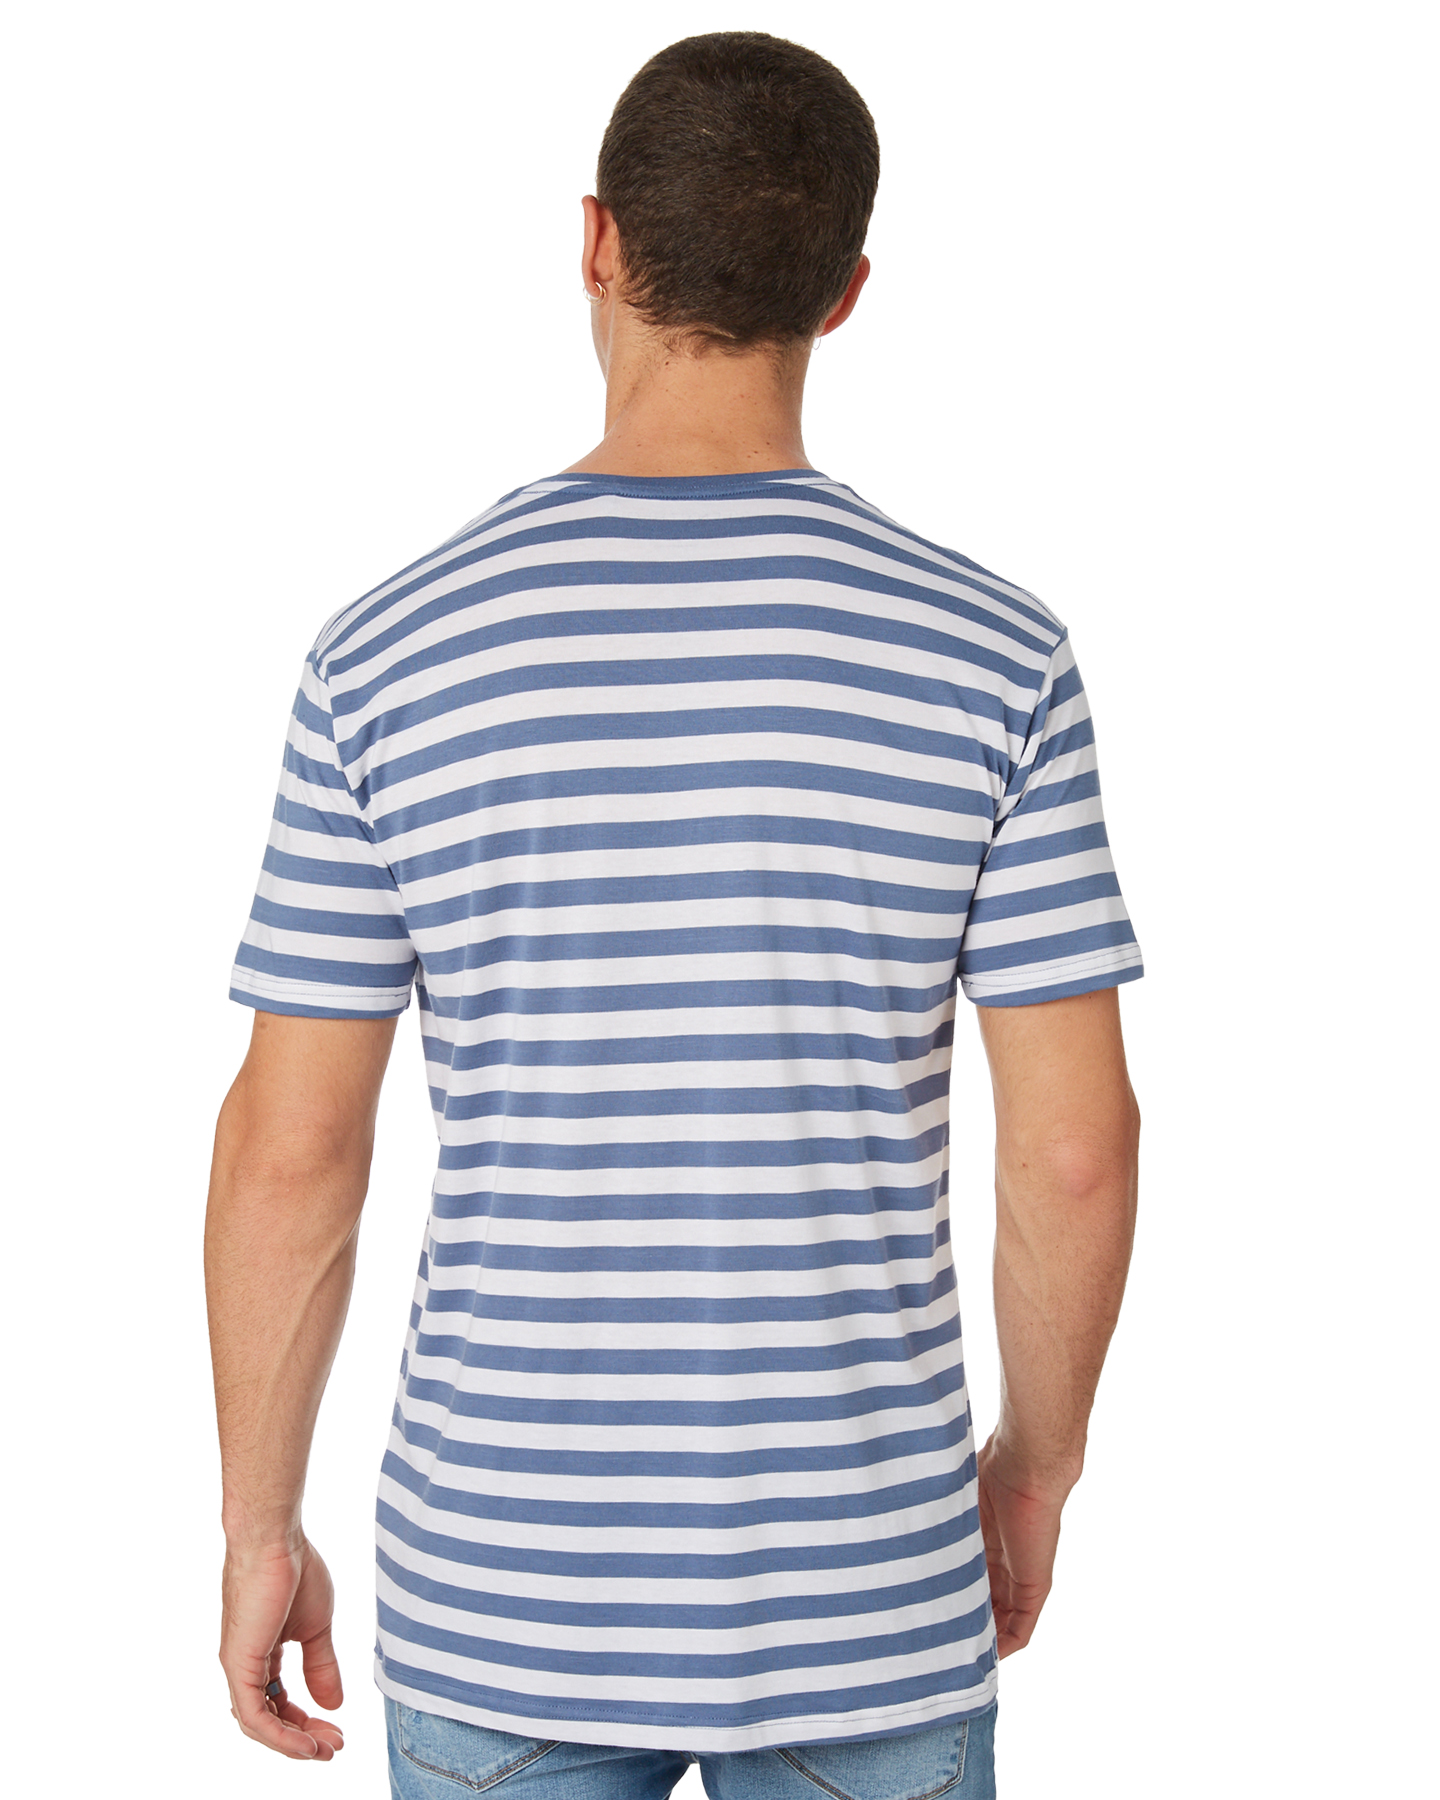 fb80aa06be Silent Theory Men's Valley Stripe Mens Tee Blue 9335673327309 | eBay